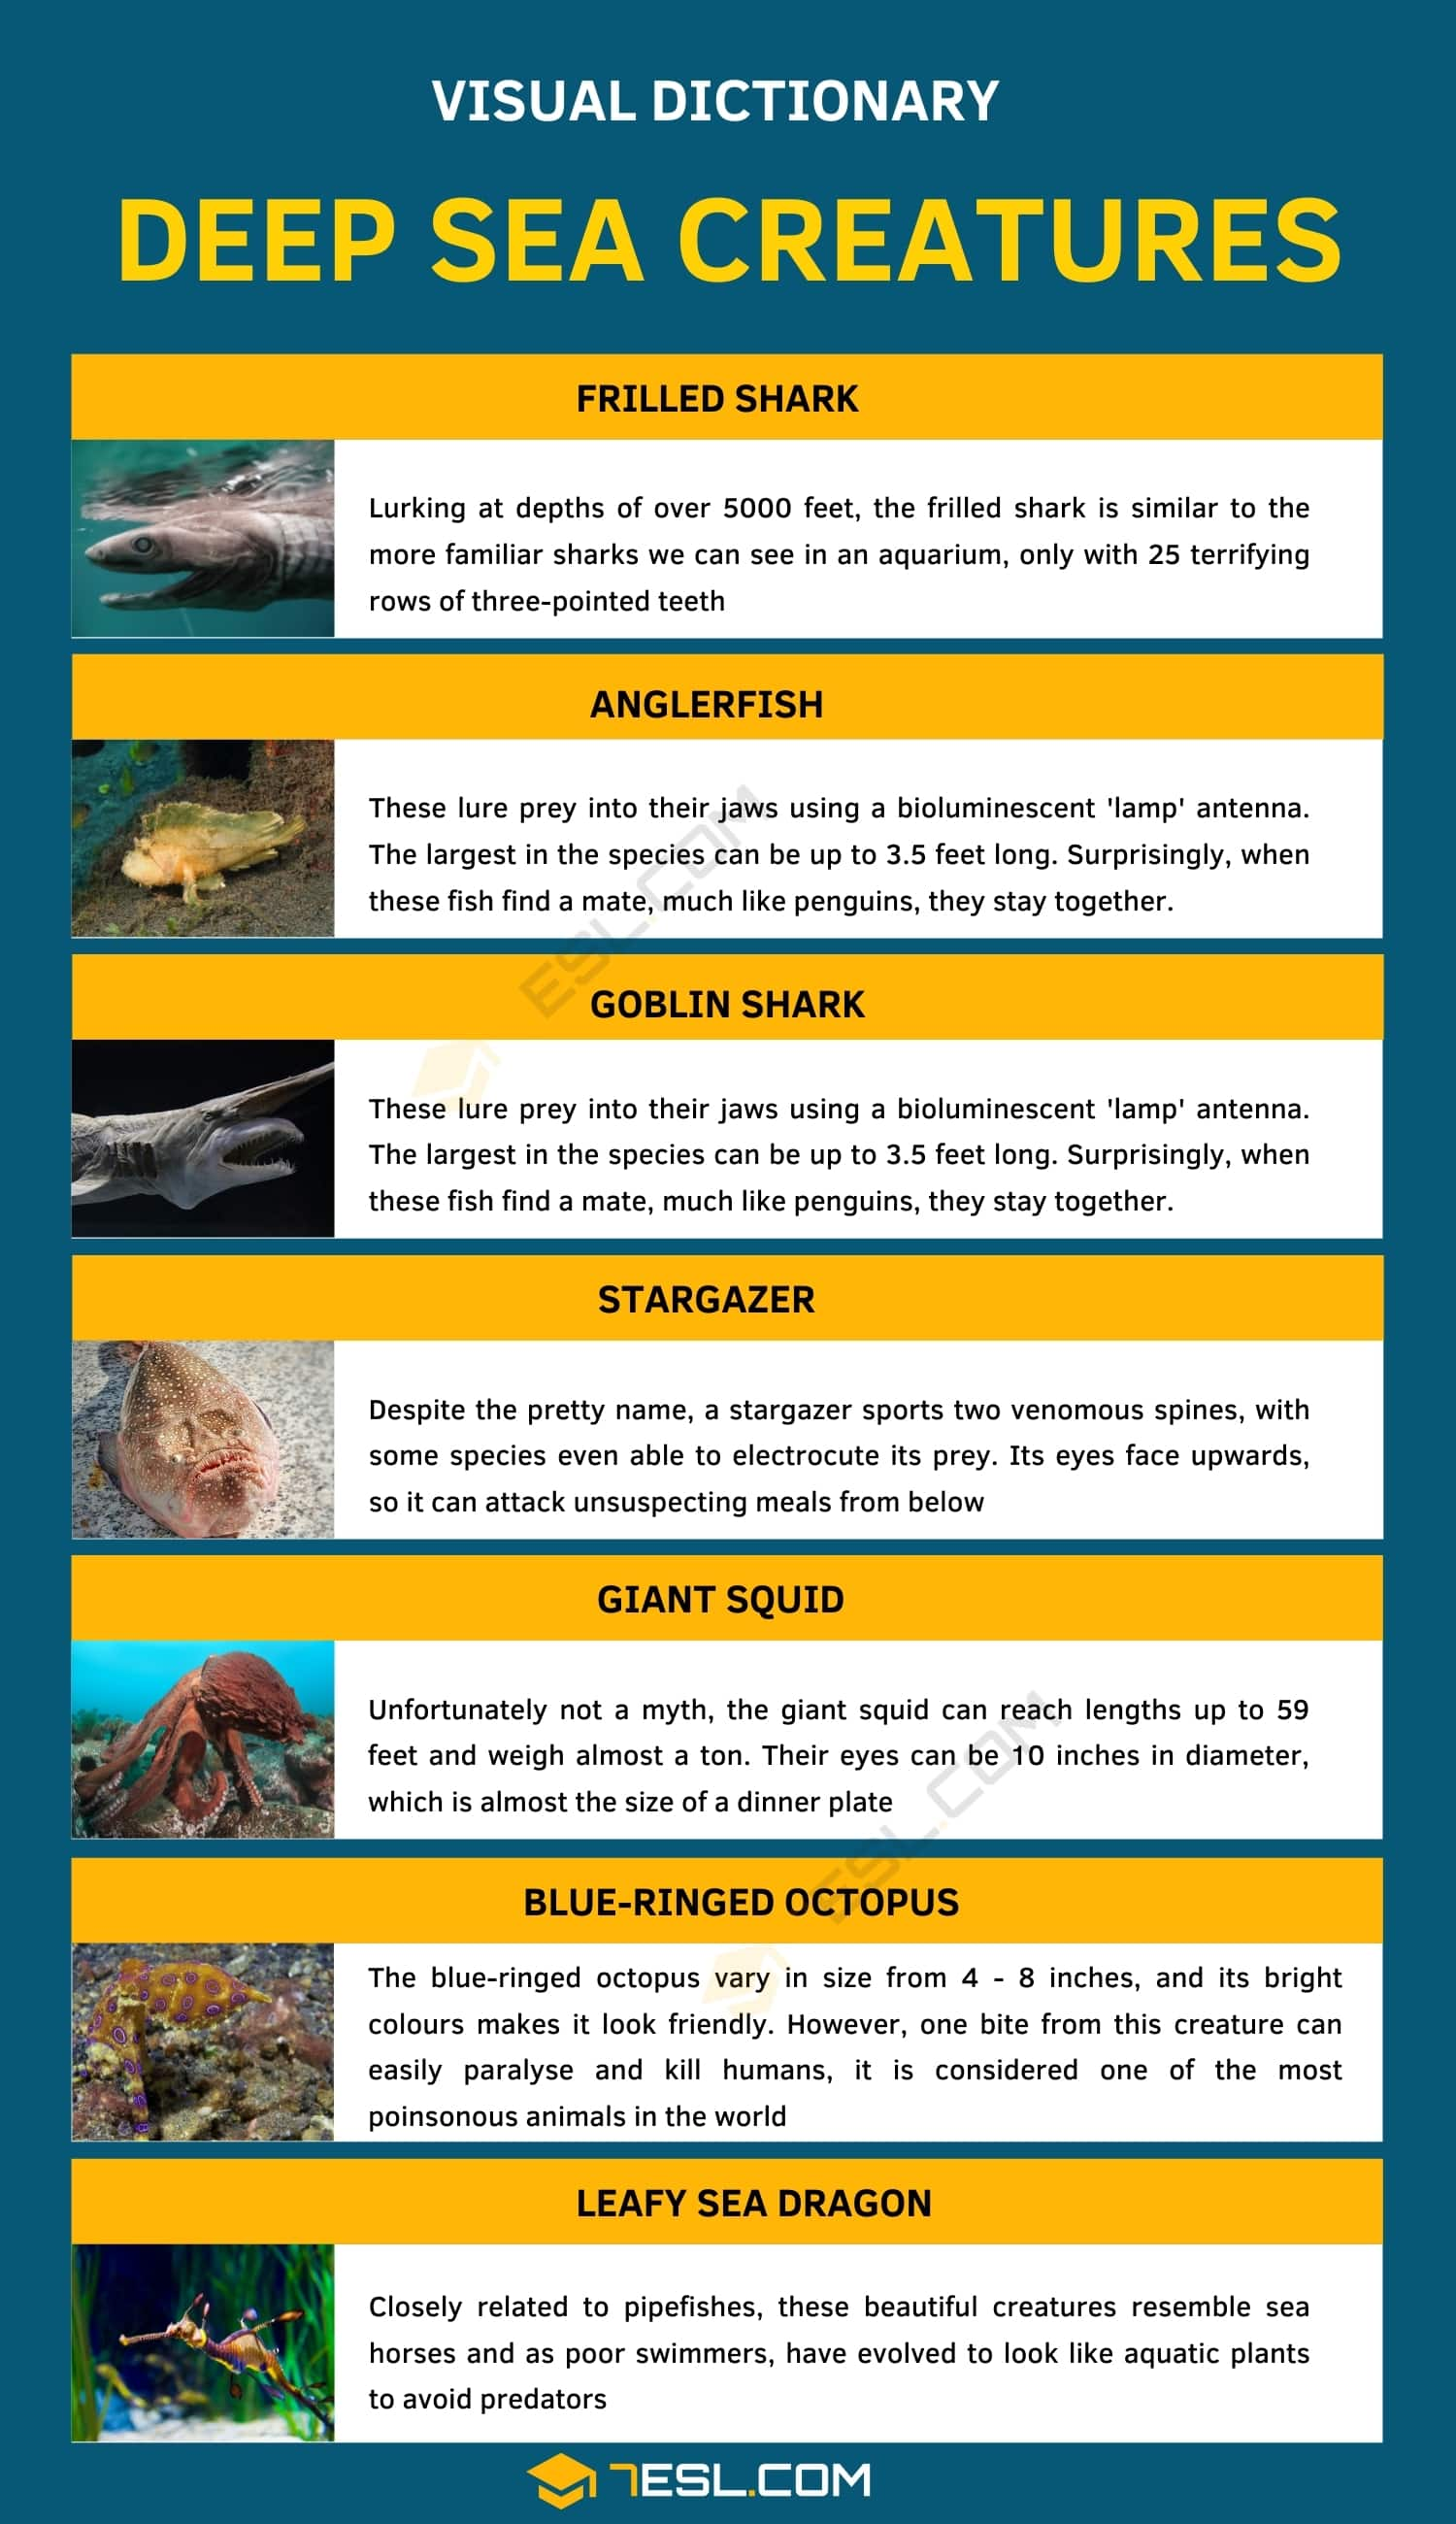 Deep sea Creatures   List of 7 Creatures from the Deep Sea